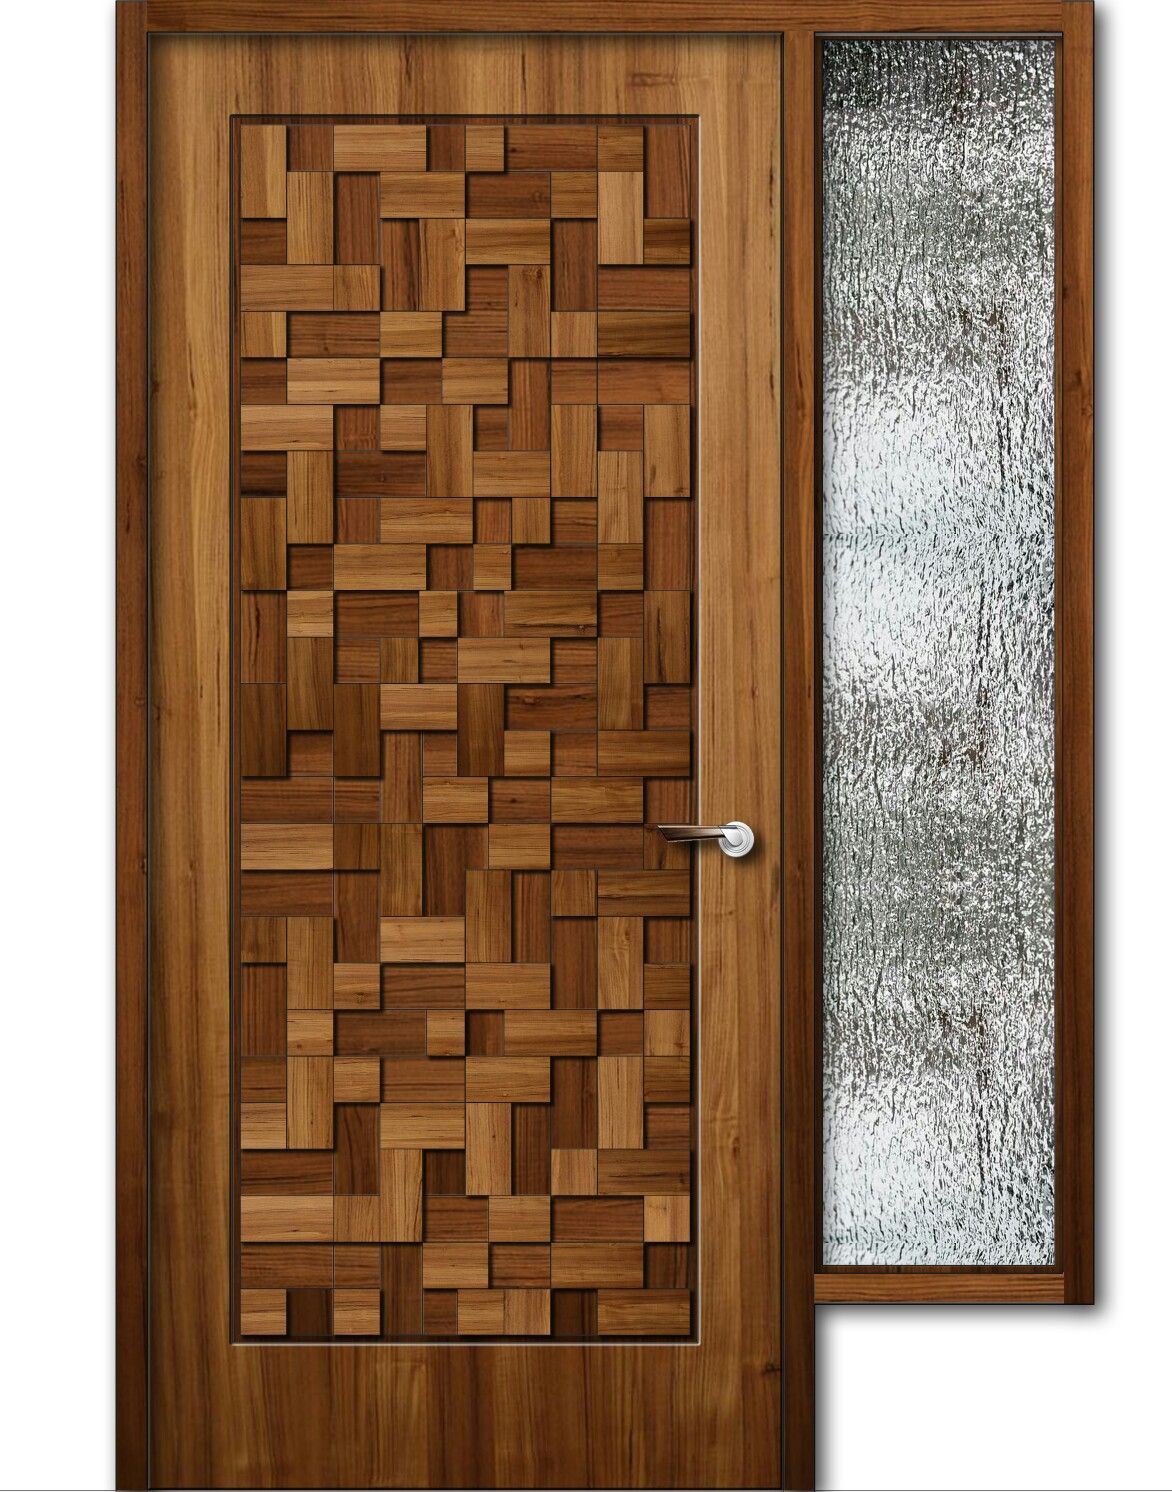 Teak wood finish wooden door with window 8feet height for Latest main door